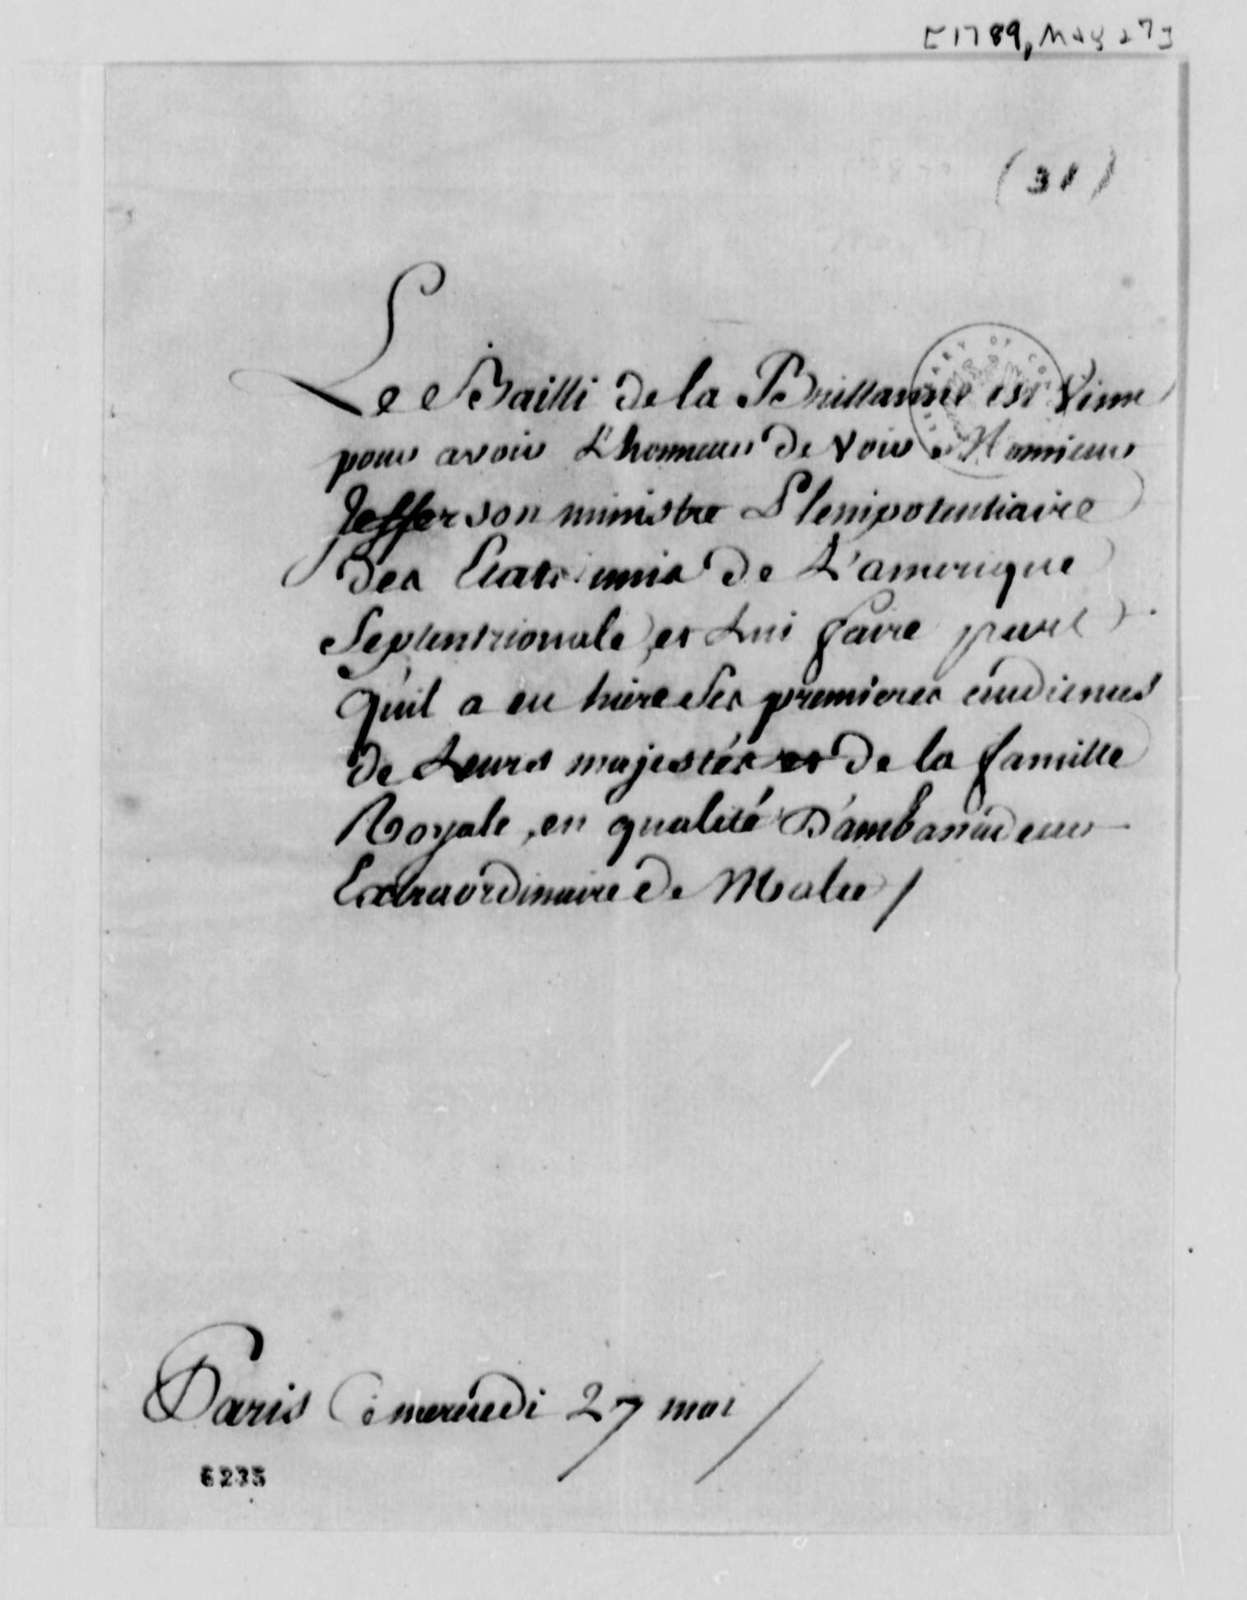 Brittany Province to Thomas Jefferson, May 27, 1789, in French